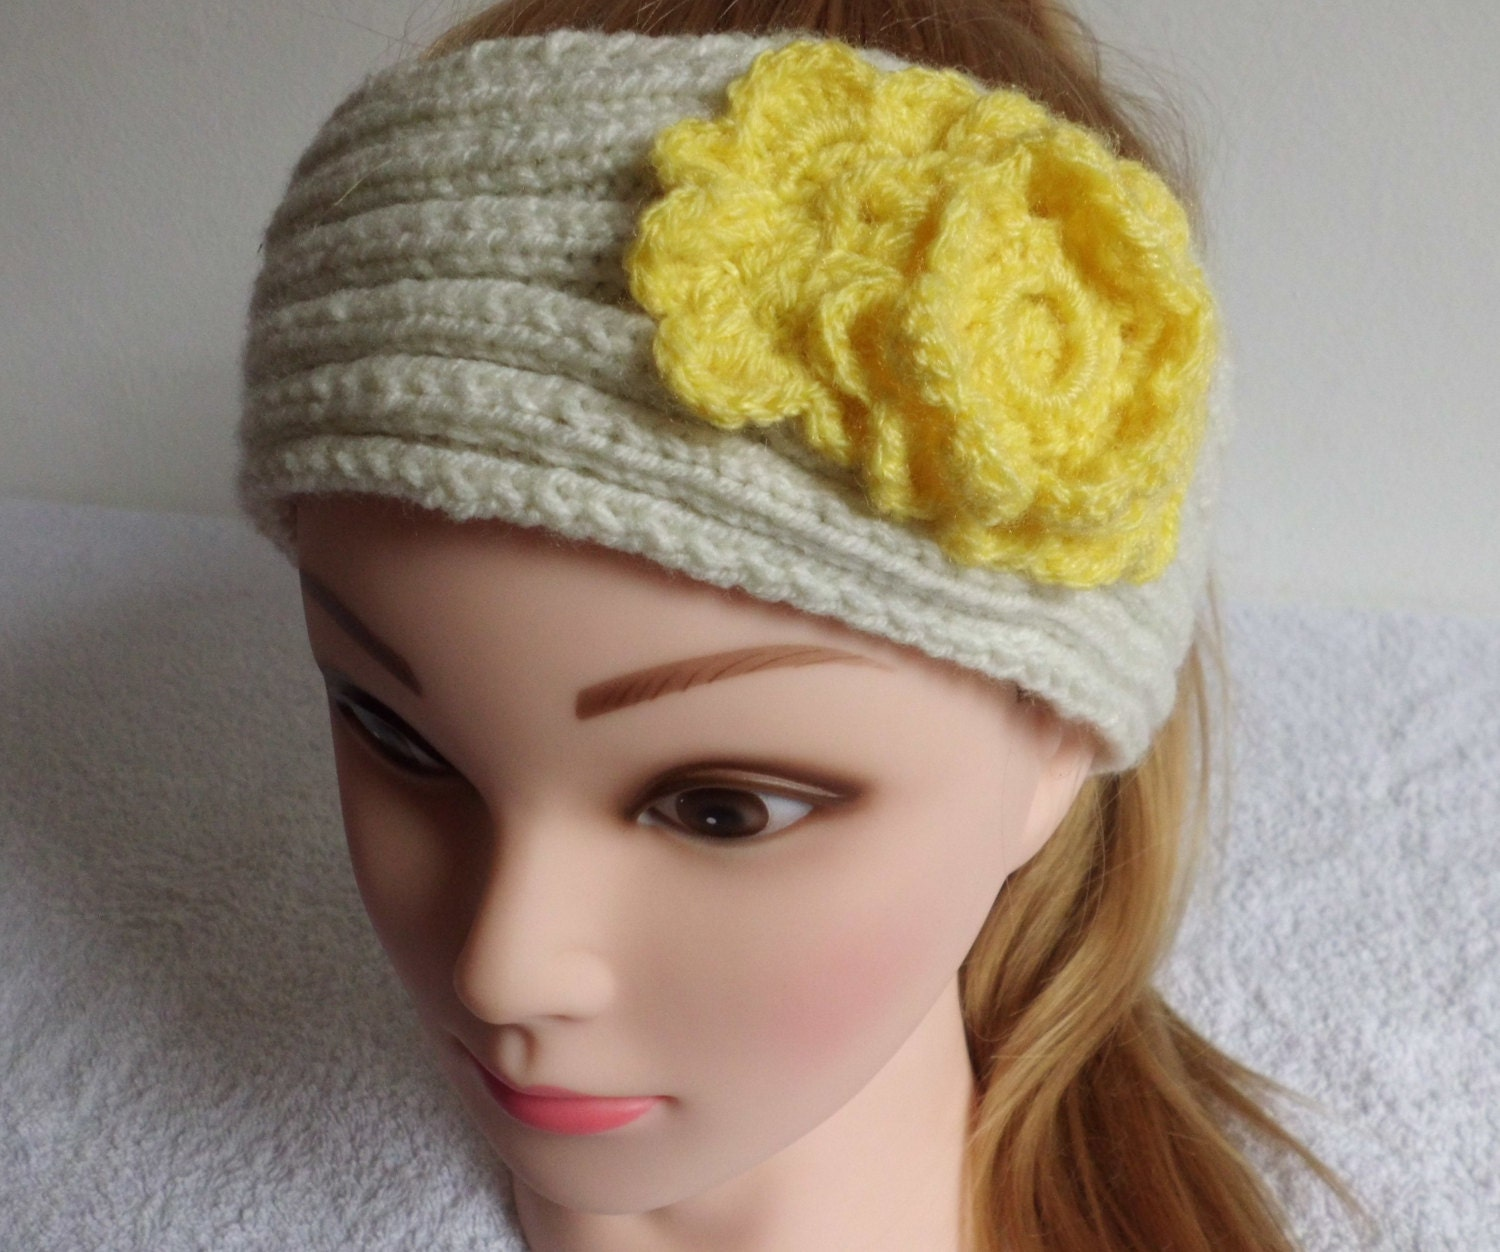 Winter Headbands. Showing 40 of results that match your query. Search Product Result. Knitted Cold Weather Headband (White) Product Image. Price $ Product Title. Knitted Flower Winter Headband (Large) Knitted Cold Weather Headband (White) Add To Cart. There is a problem adding to cart. Please try again.